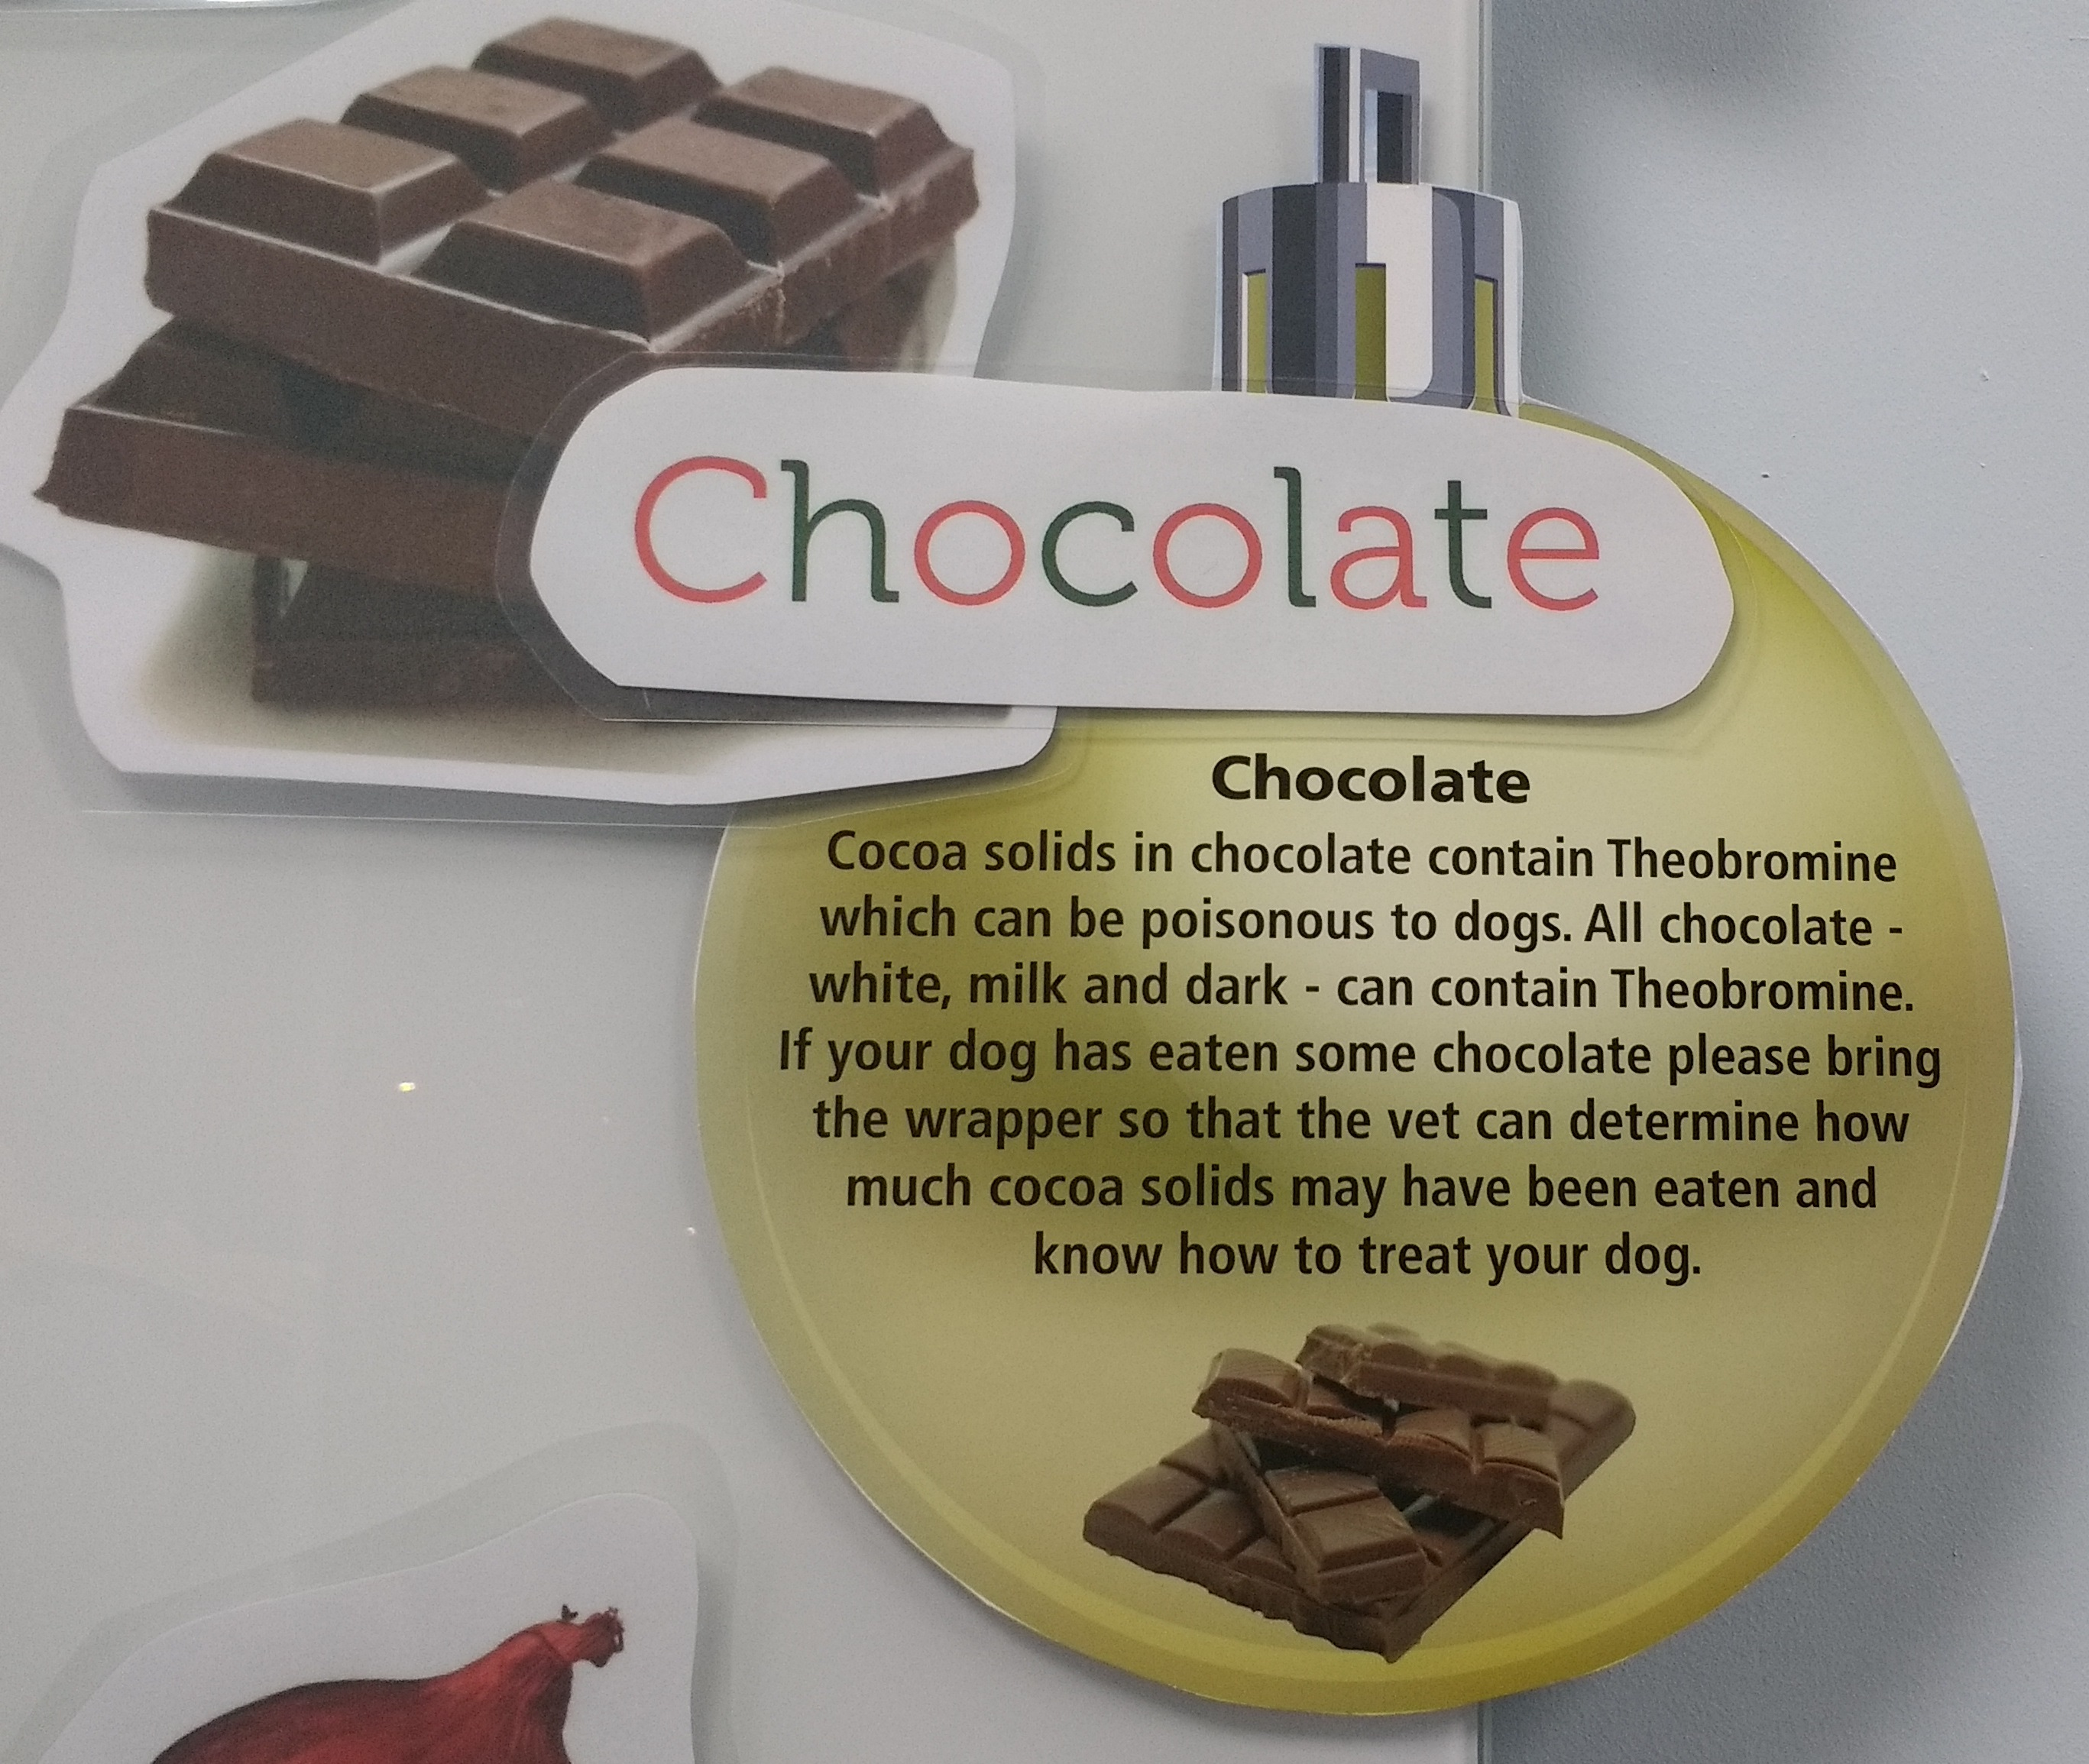 Chocolate can be poisonous to pets